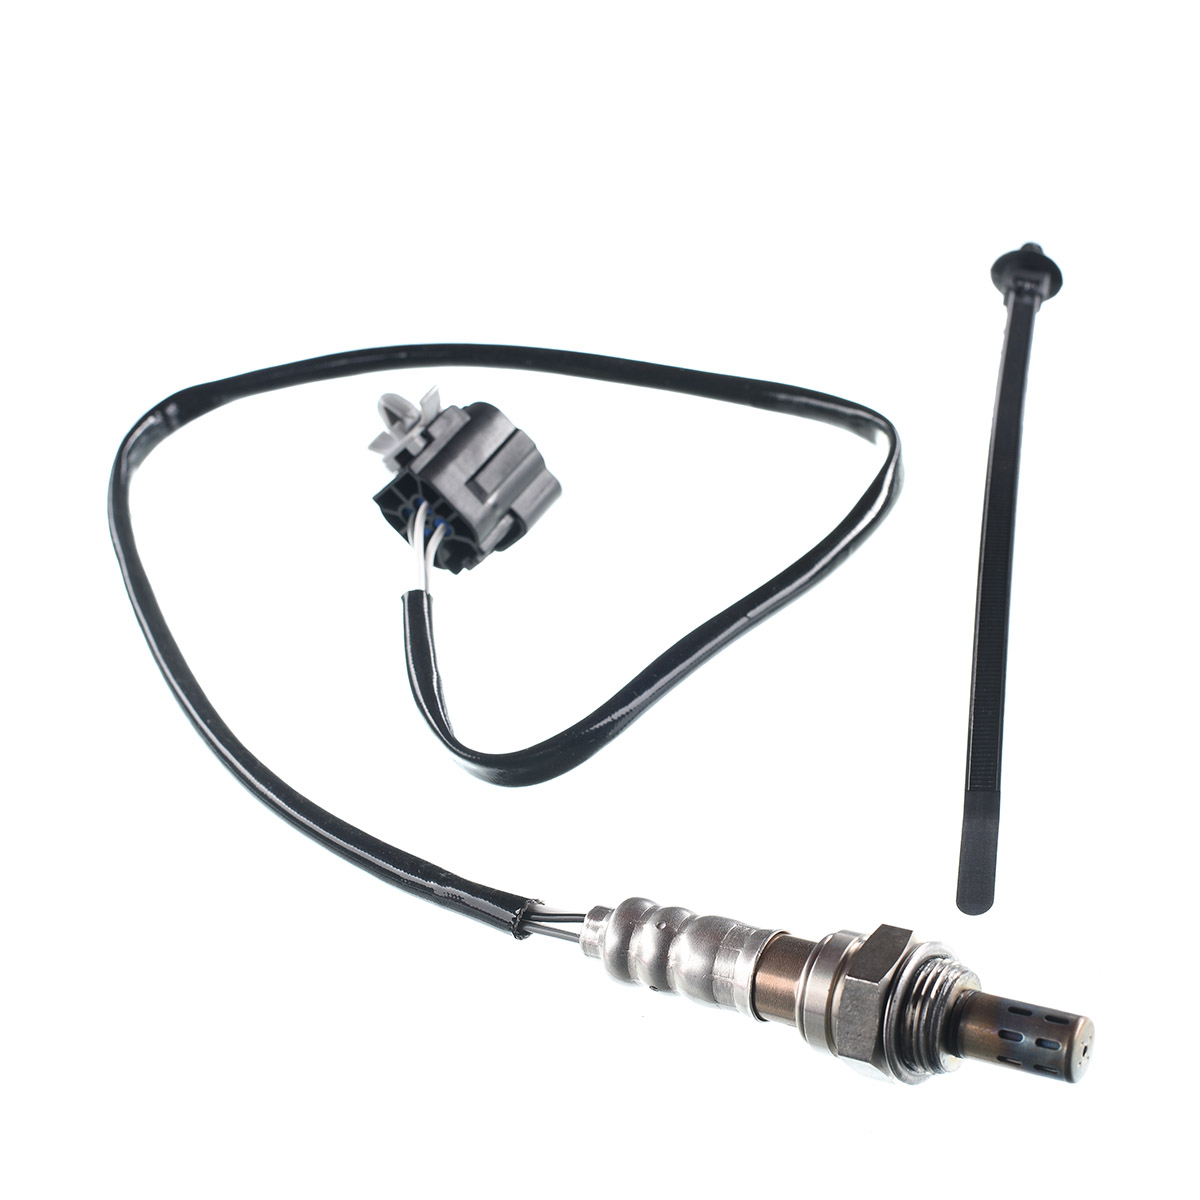 O2 Oxygen Sensor for Mazda 626 Millenia MX 6 Ford Probe